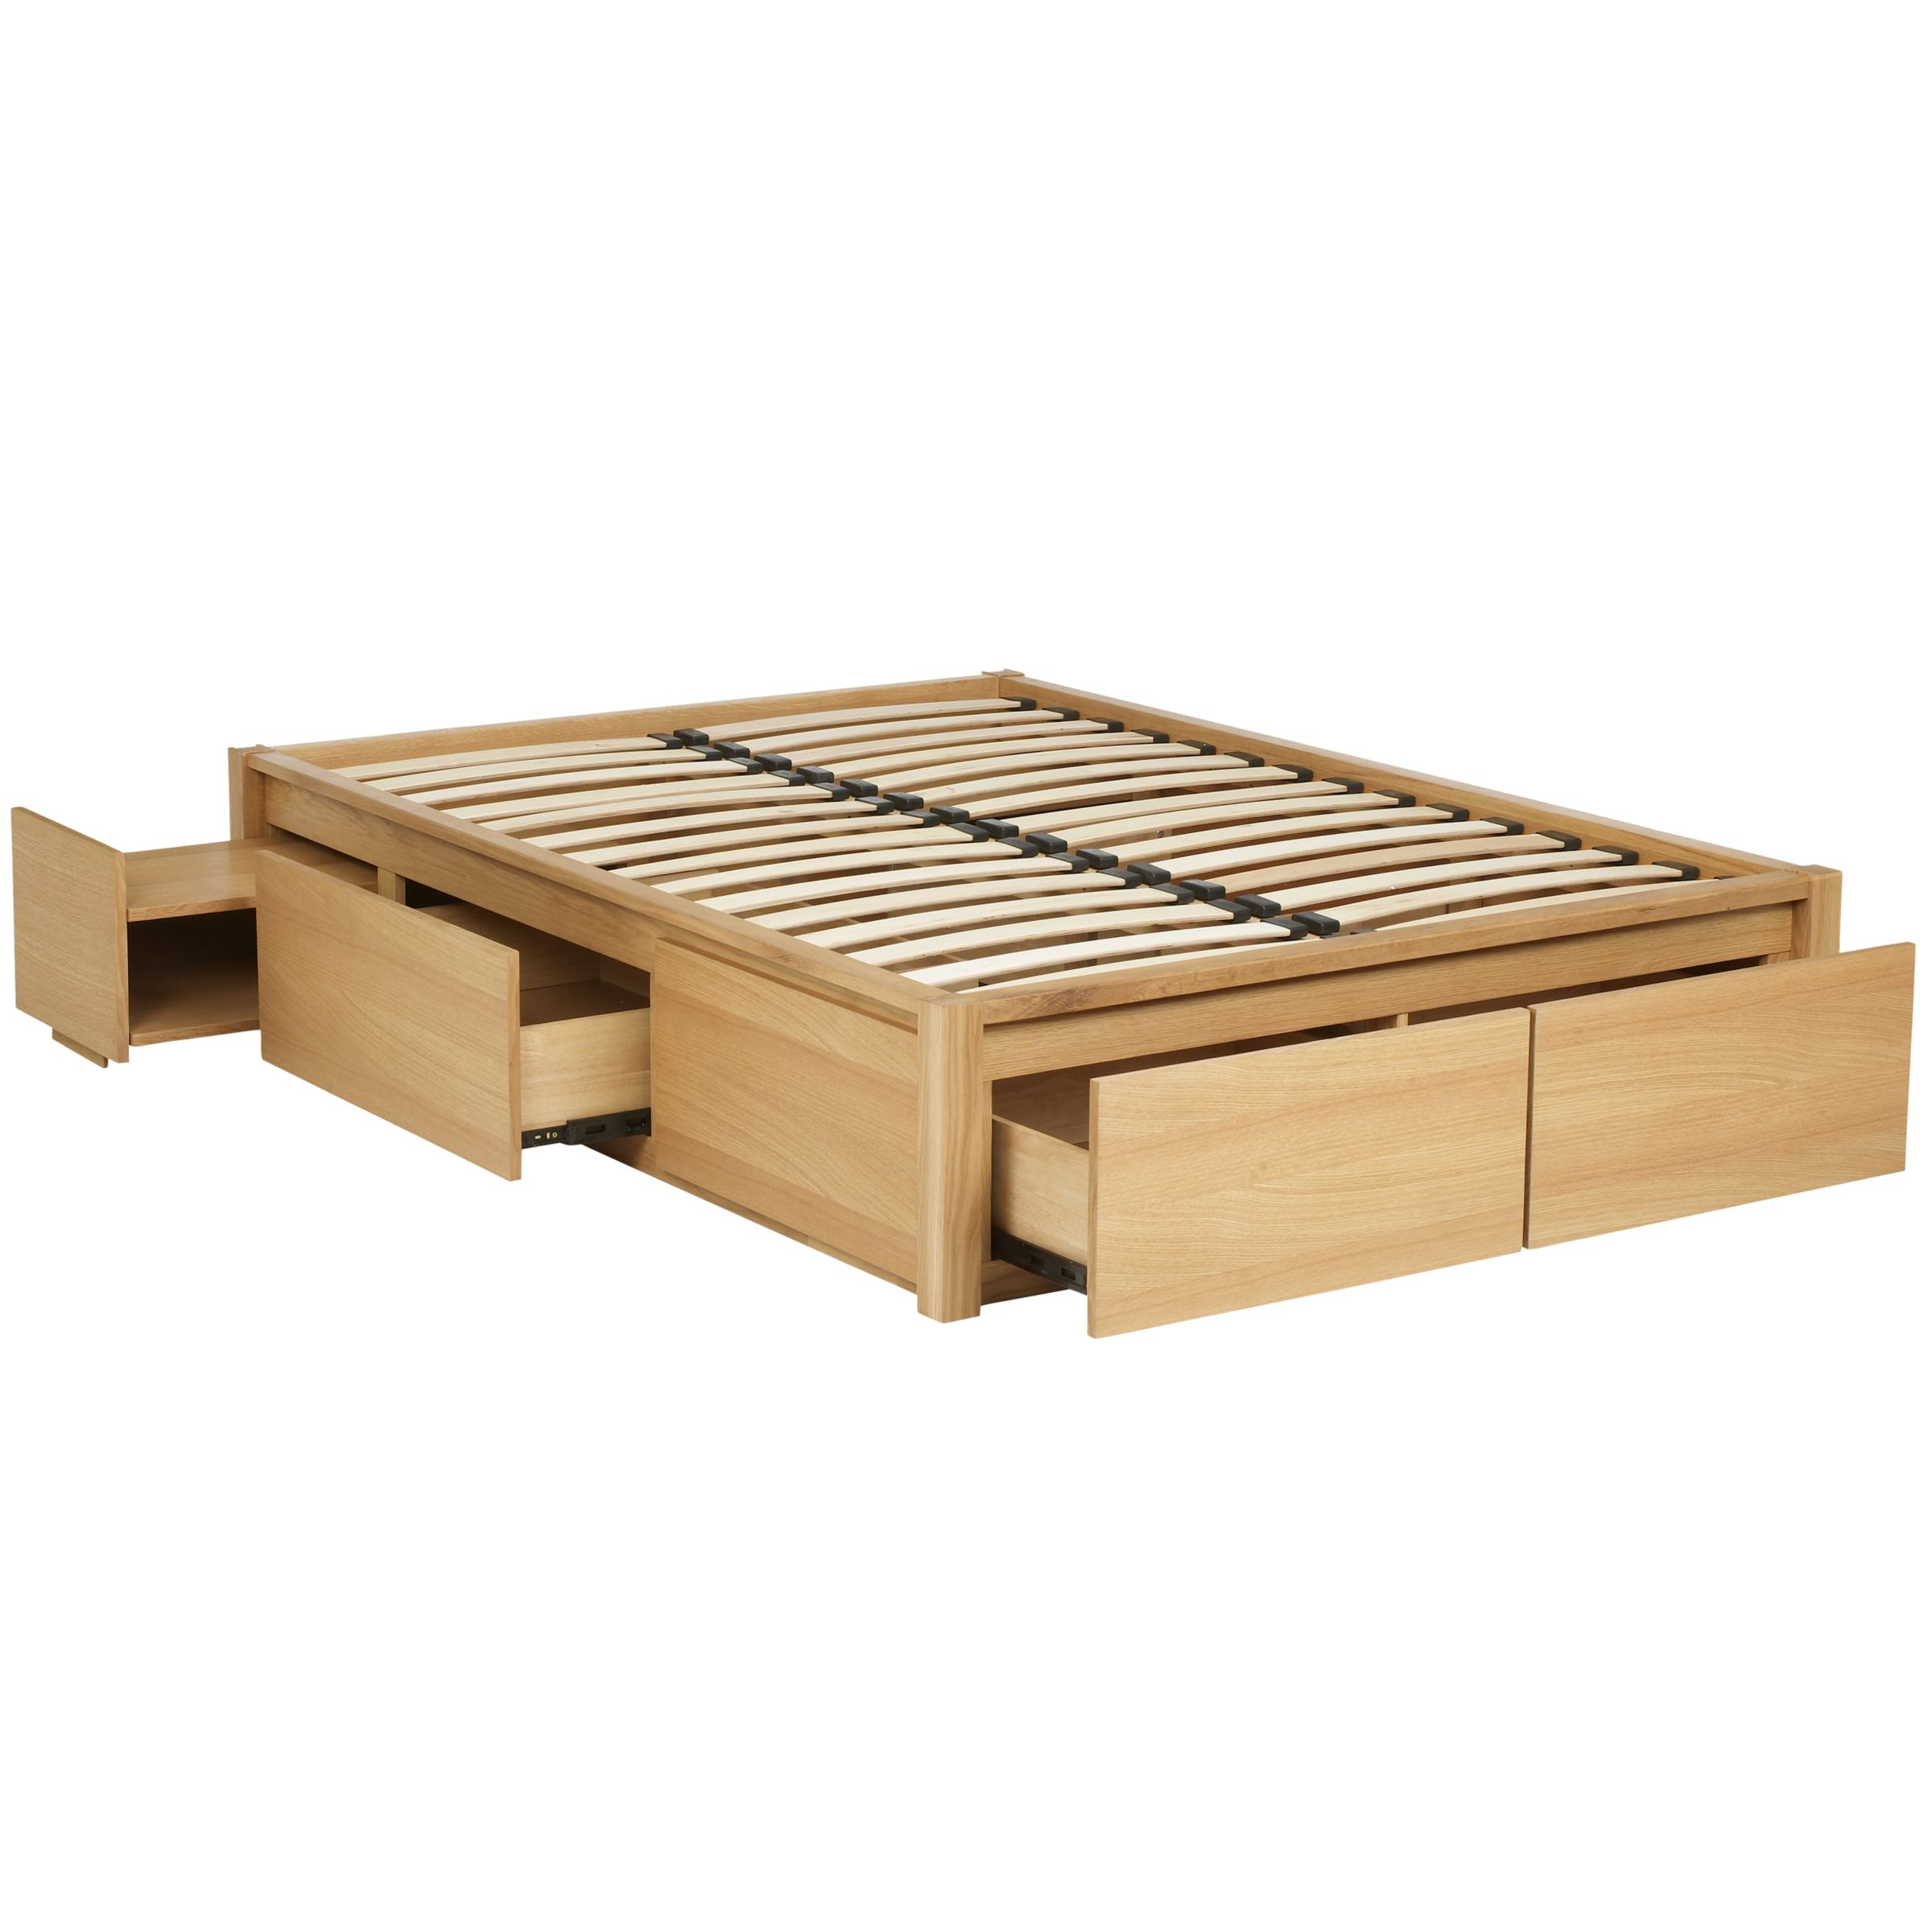 Diy King Platform Bed With Drawers | www.woodworking.bofusfocus.com